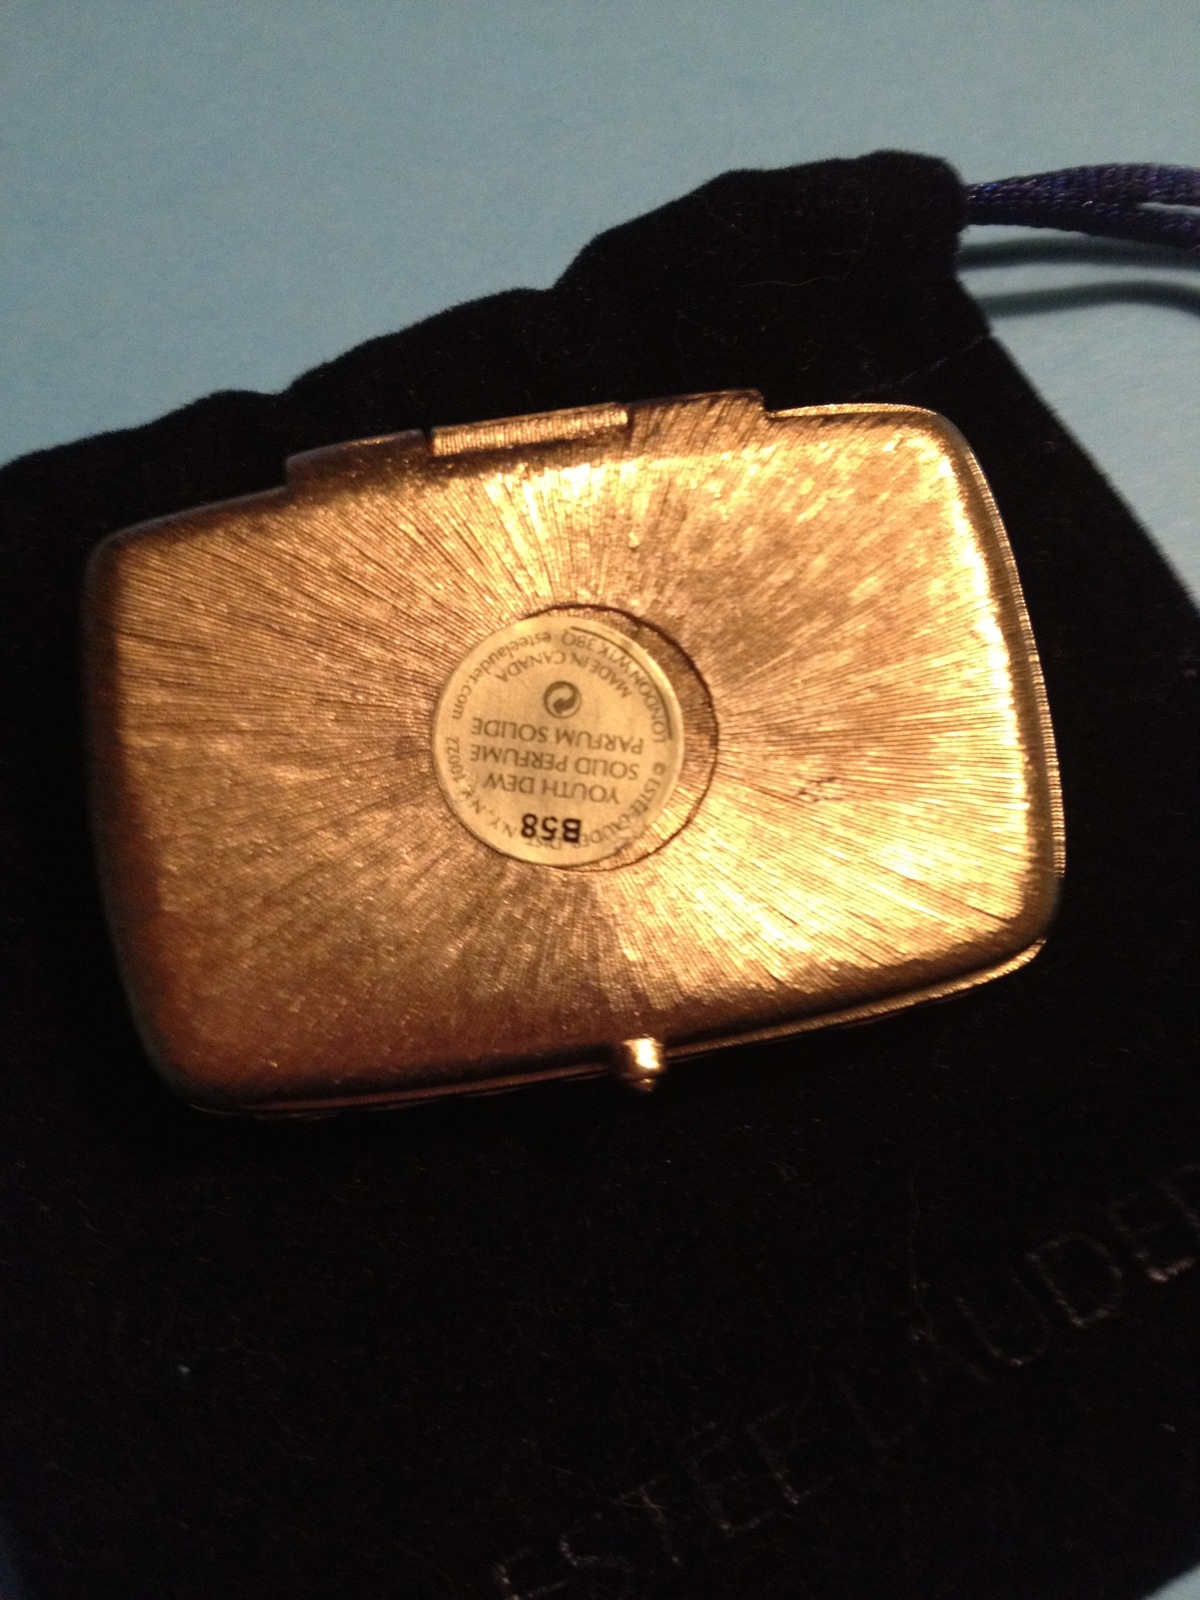 Estee Lauder GARDEN CAMEO 2008 Youth Dew Solid Perfume COMPACT - Blue and White